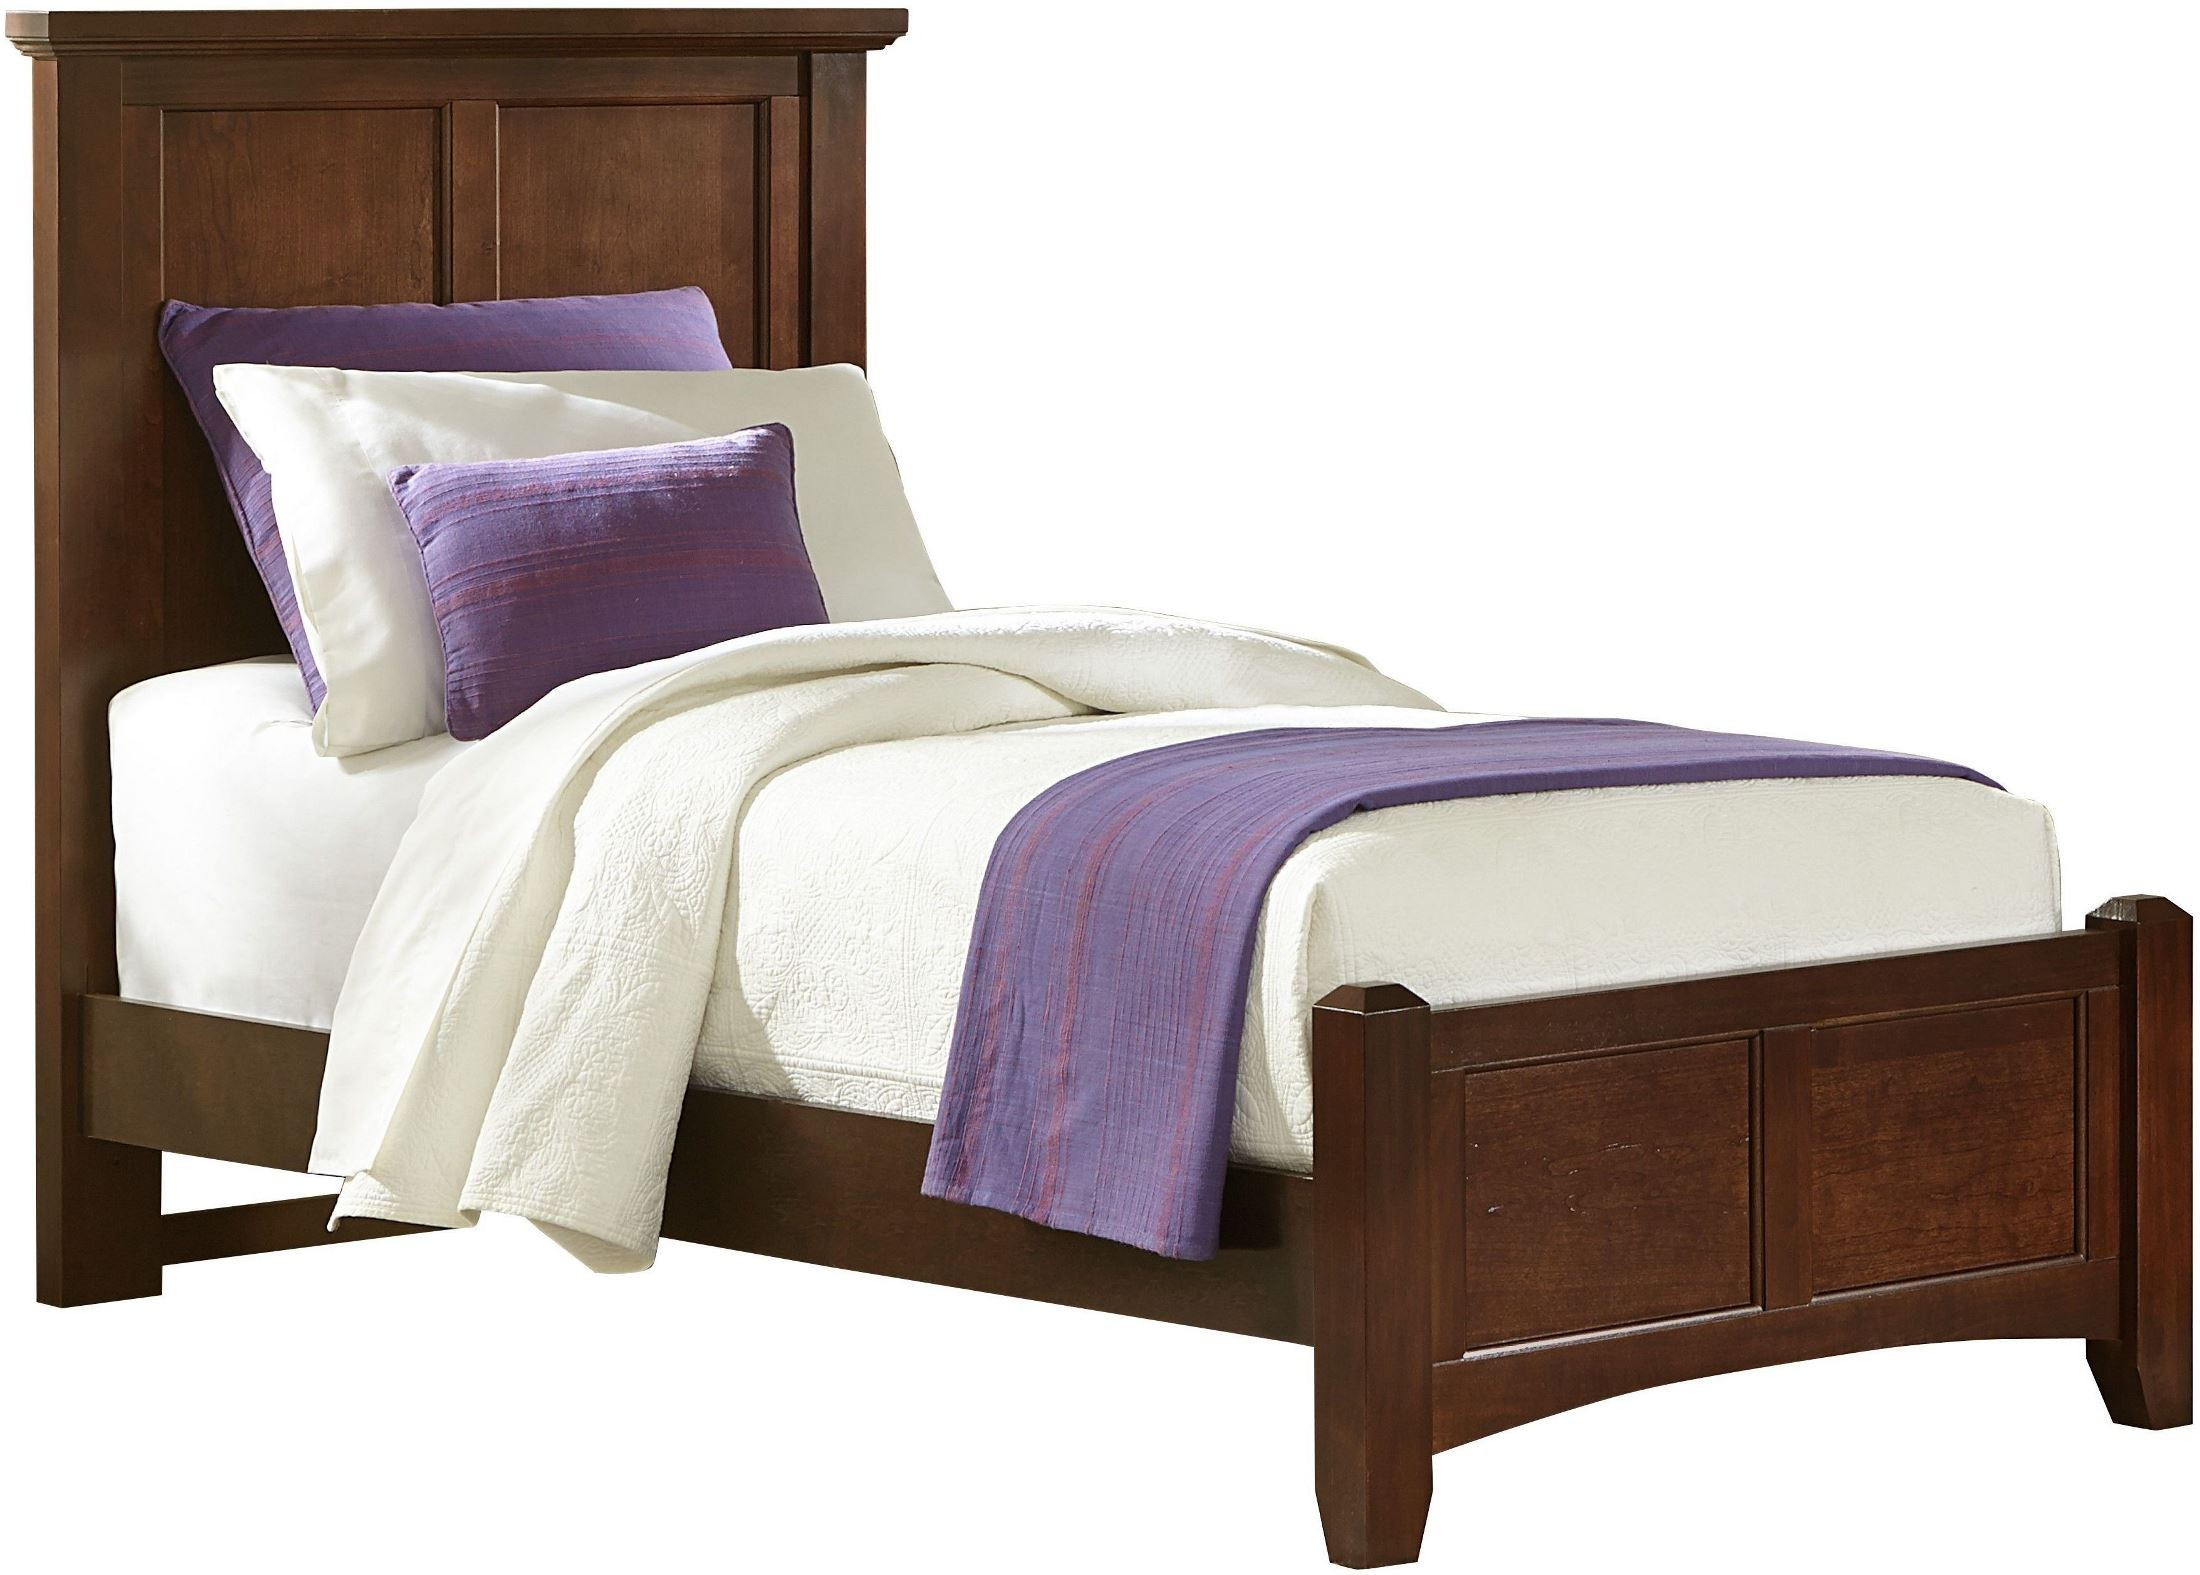 Bonanza cherry youth mansion bedroom set 1stopbedrooms - Bedroom furniture sets buy now pay later ...